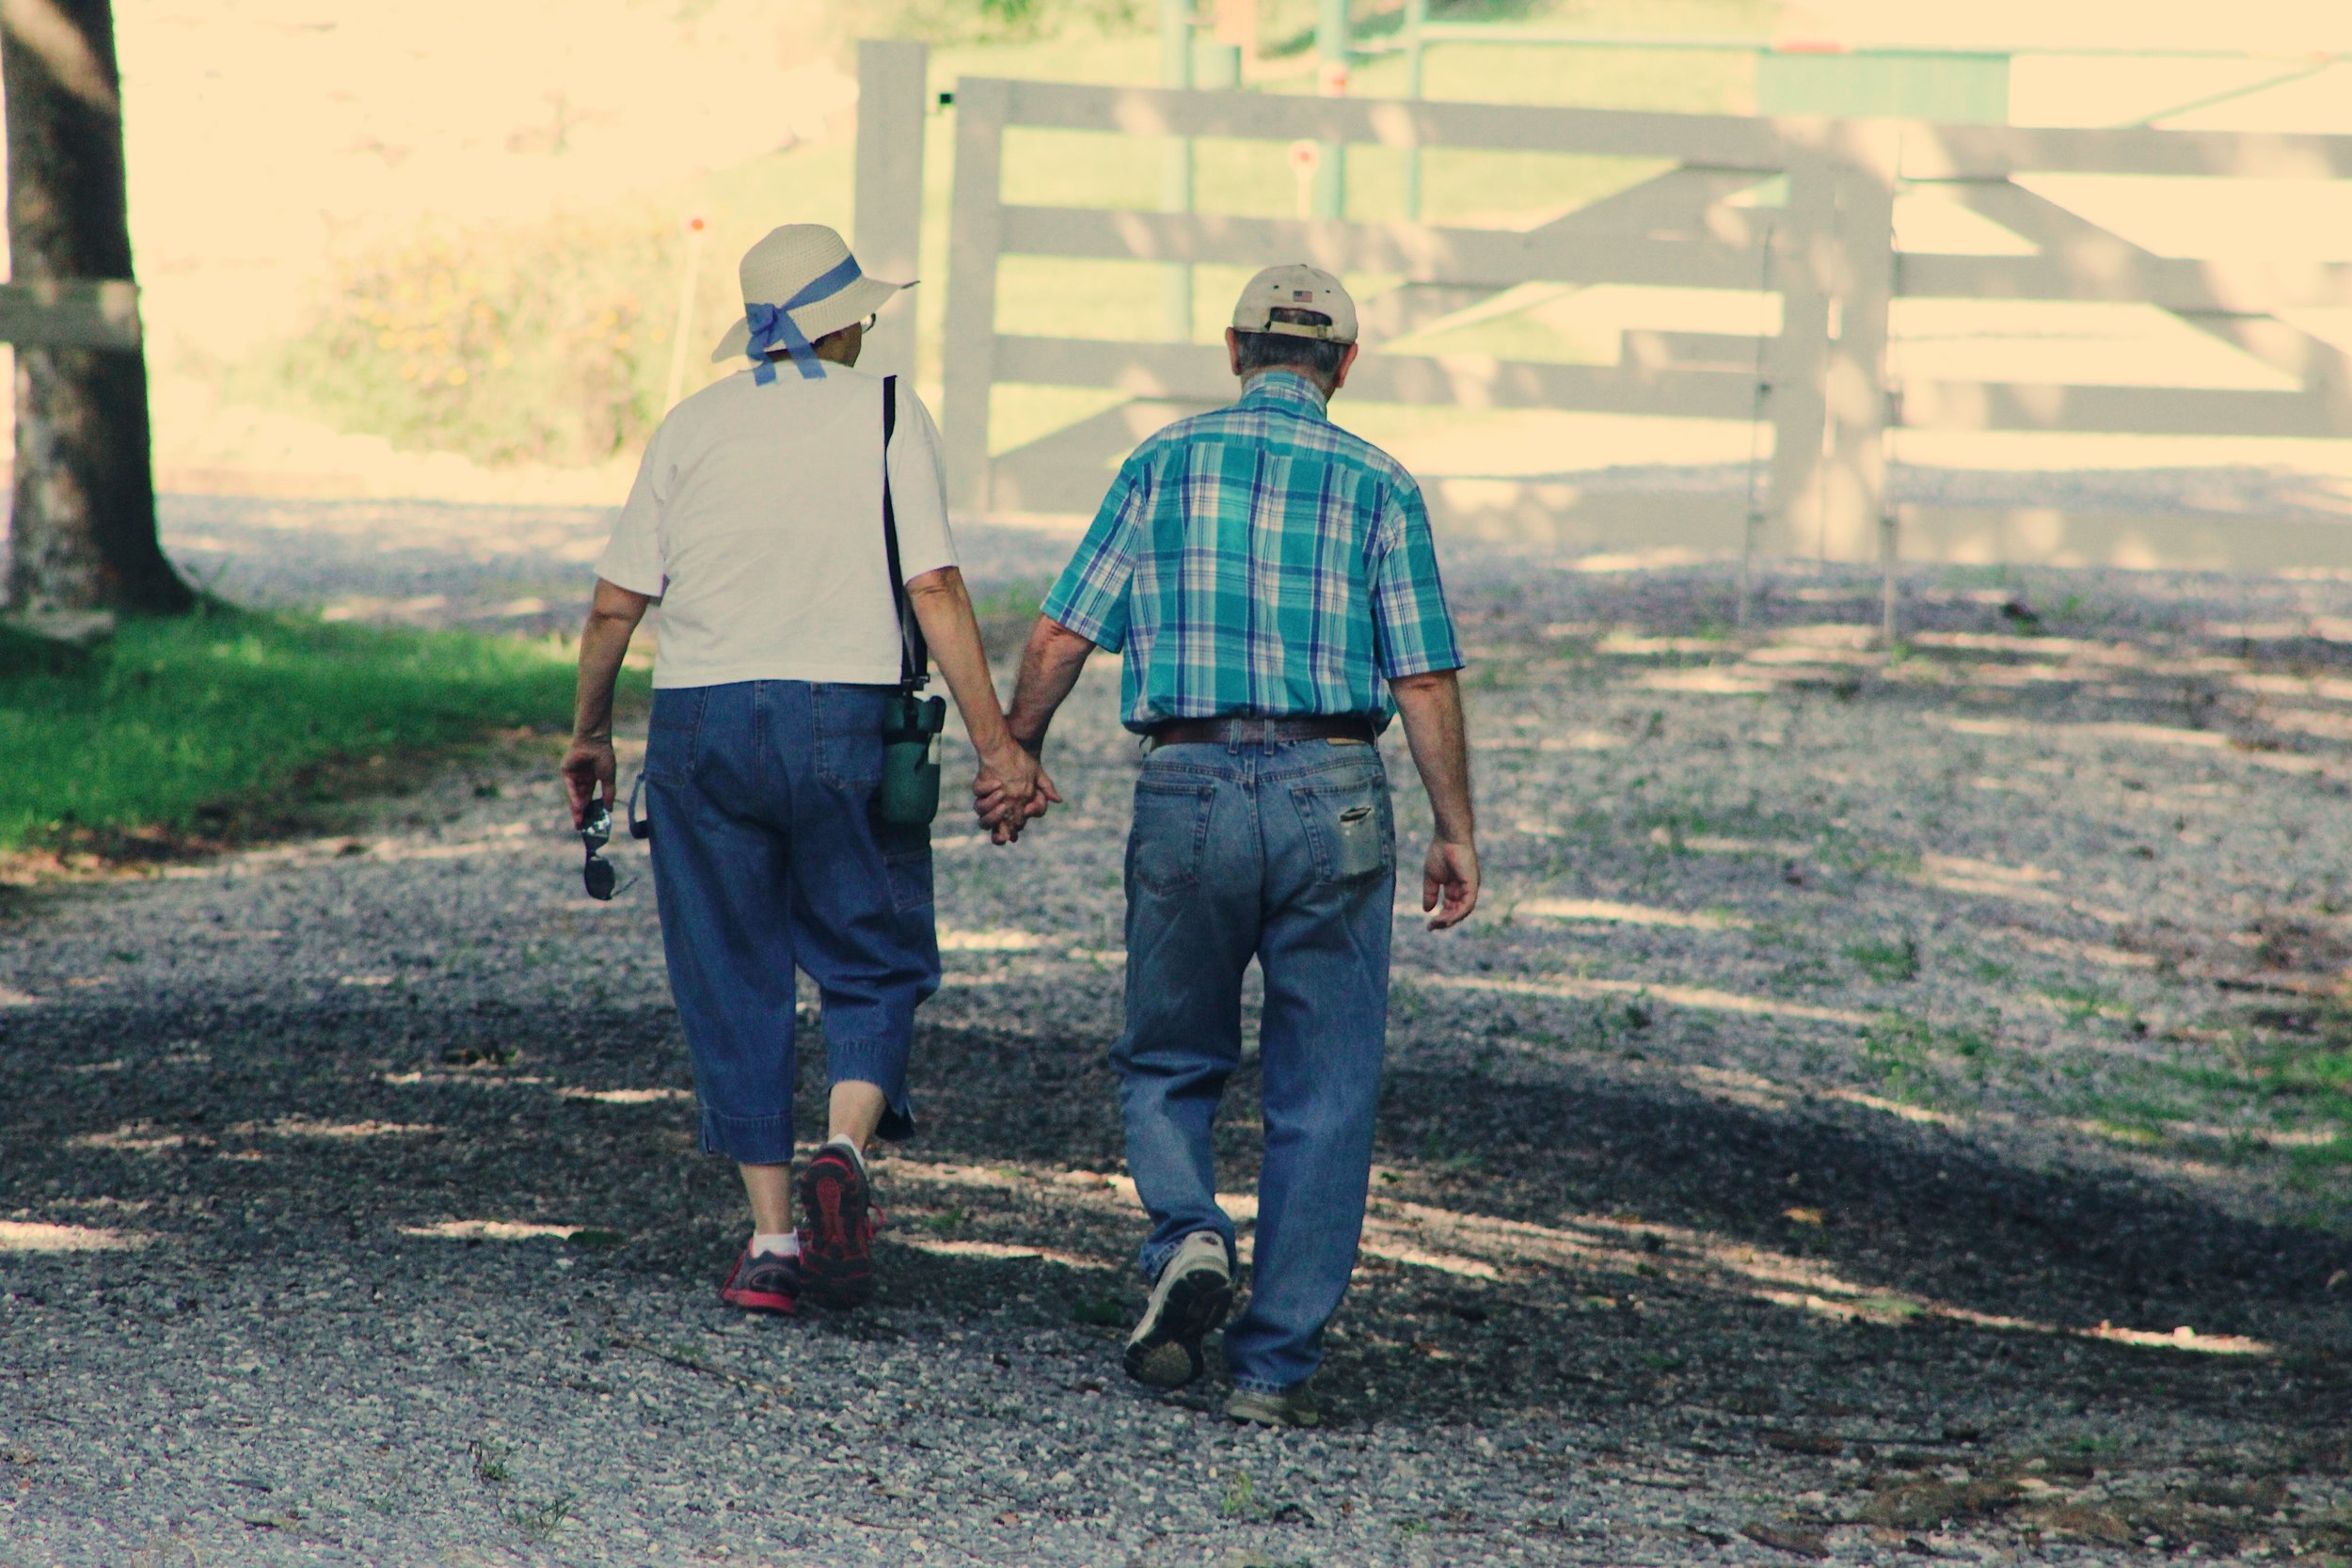 Short walks are not only peaceful, but can also help reduce swelling!